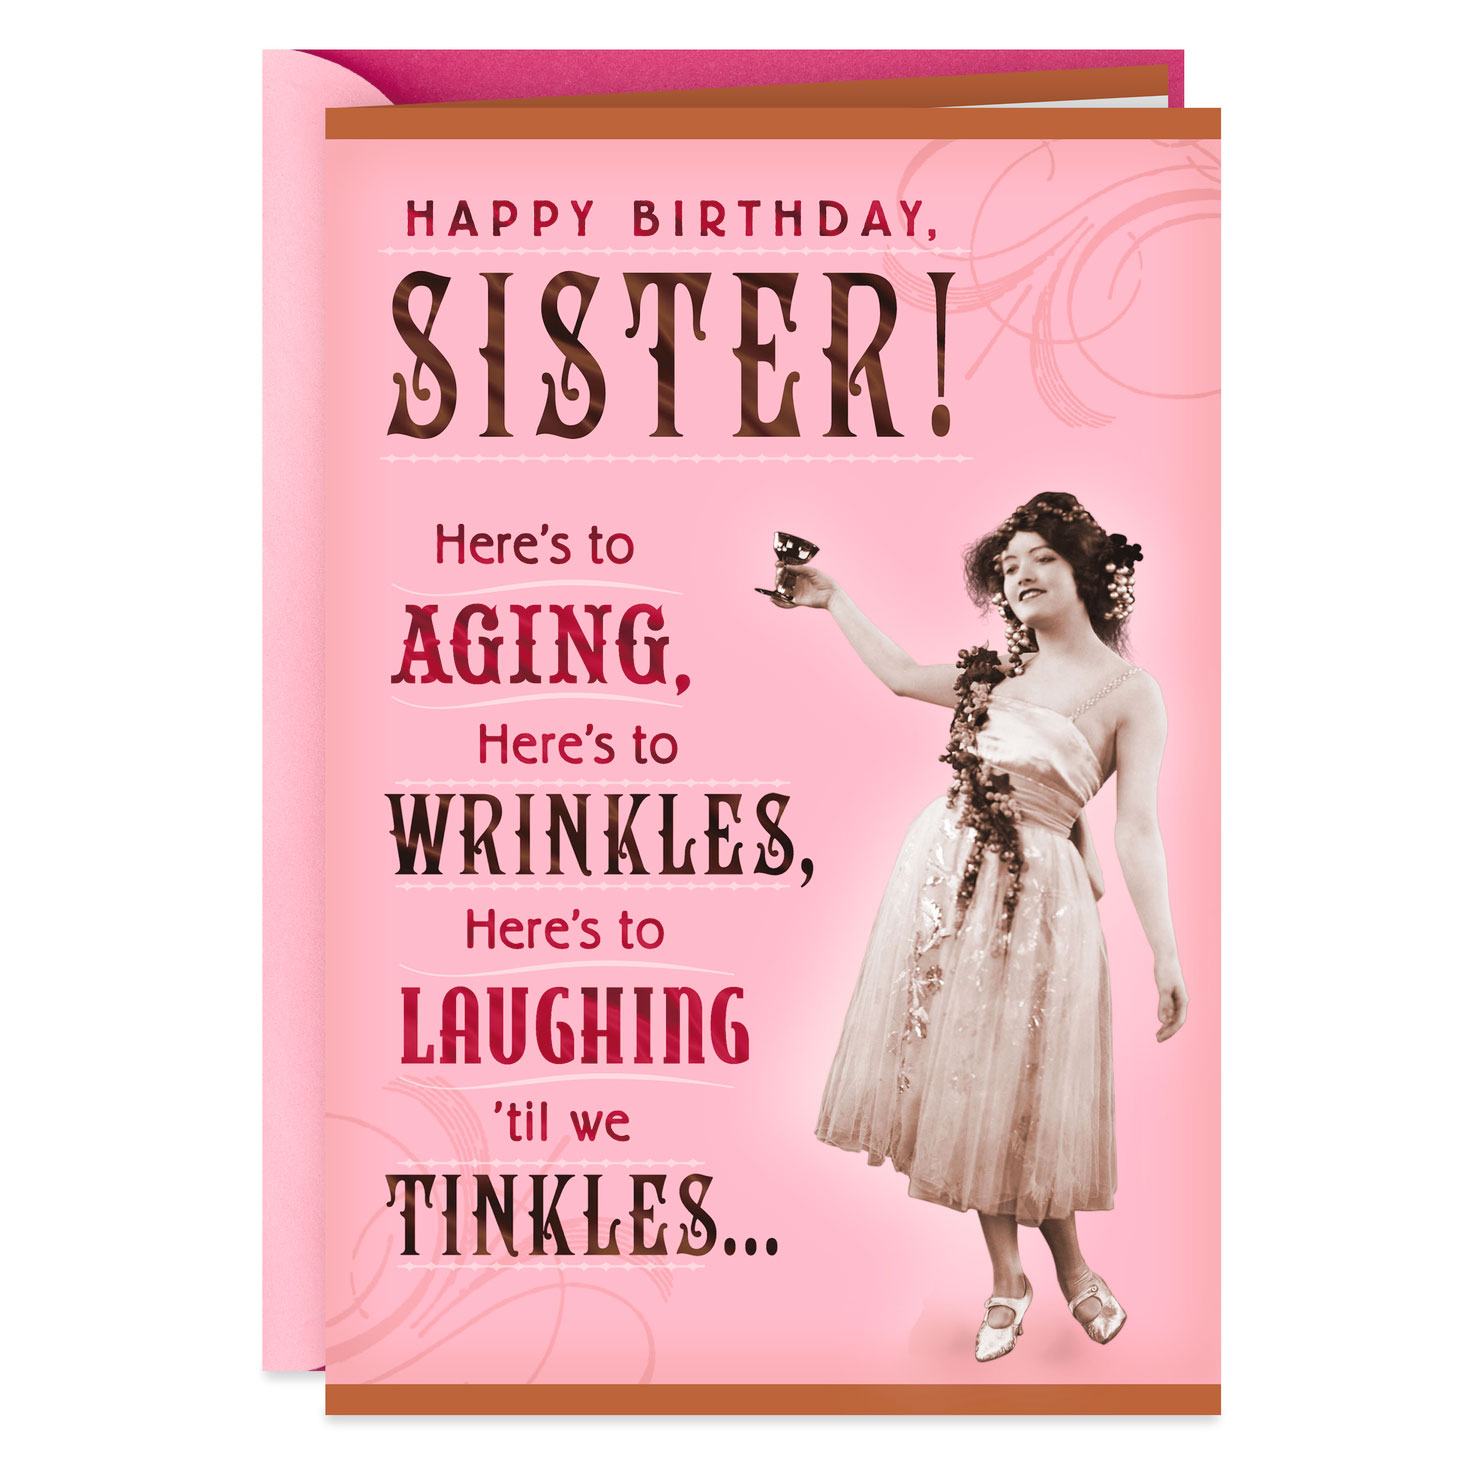 wrinkles and tinkles sister birthday card  greeting cards